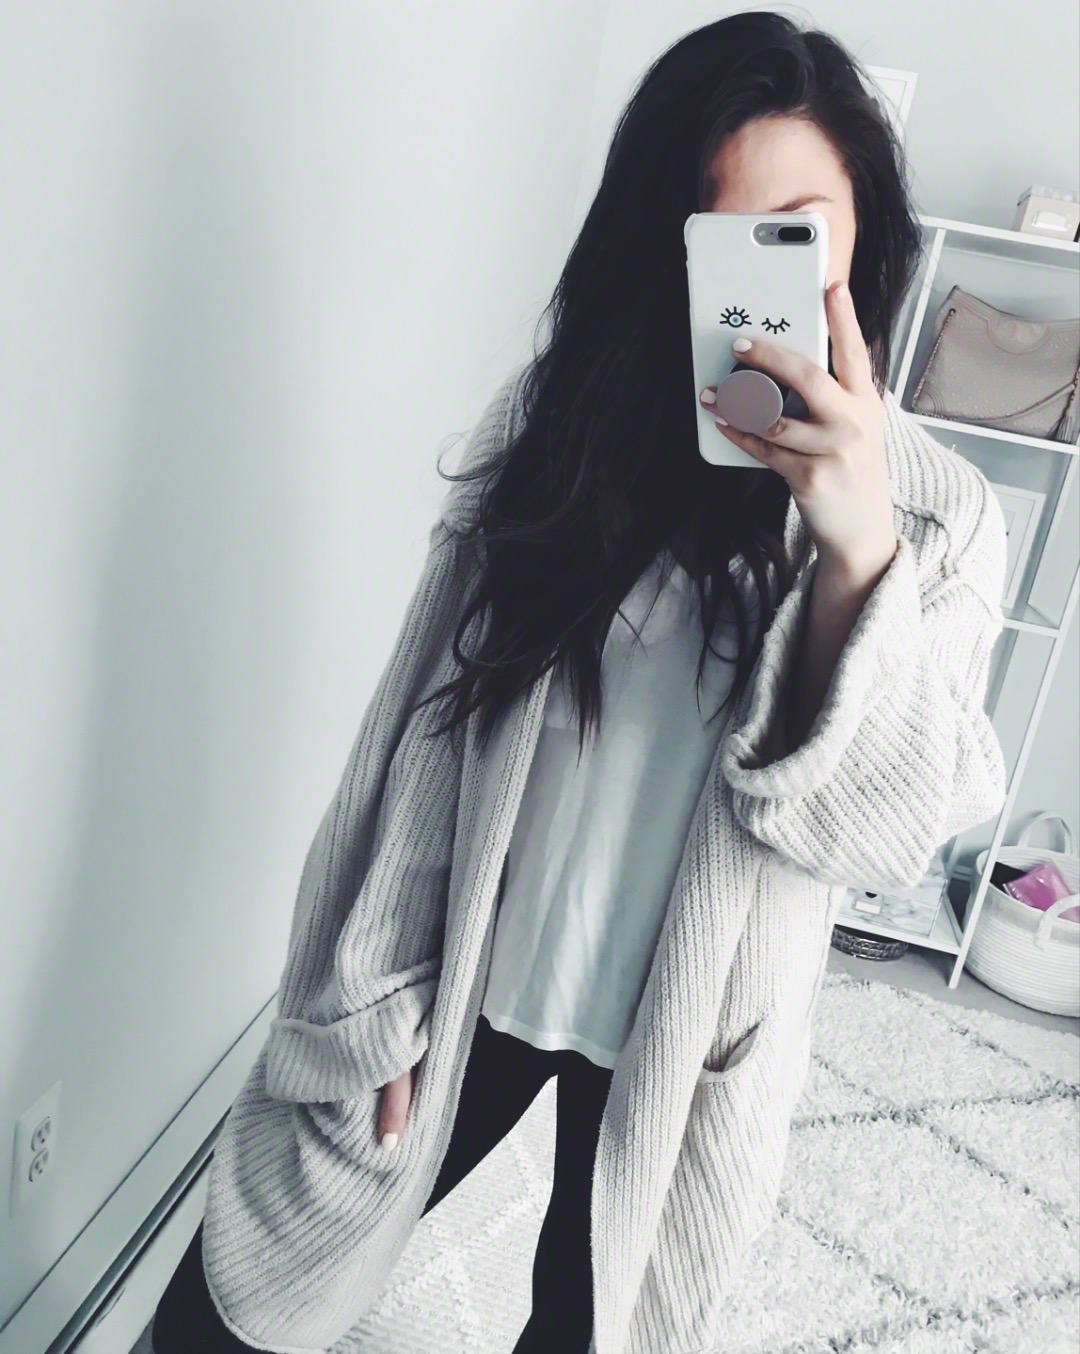 Instagram Round Up + Current Sales | Pine Barren Beauty | outfit of the day, outfit details, spring outfit, cozy cardigan, basic tee